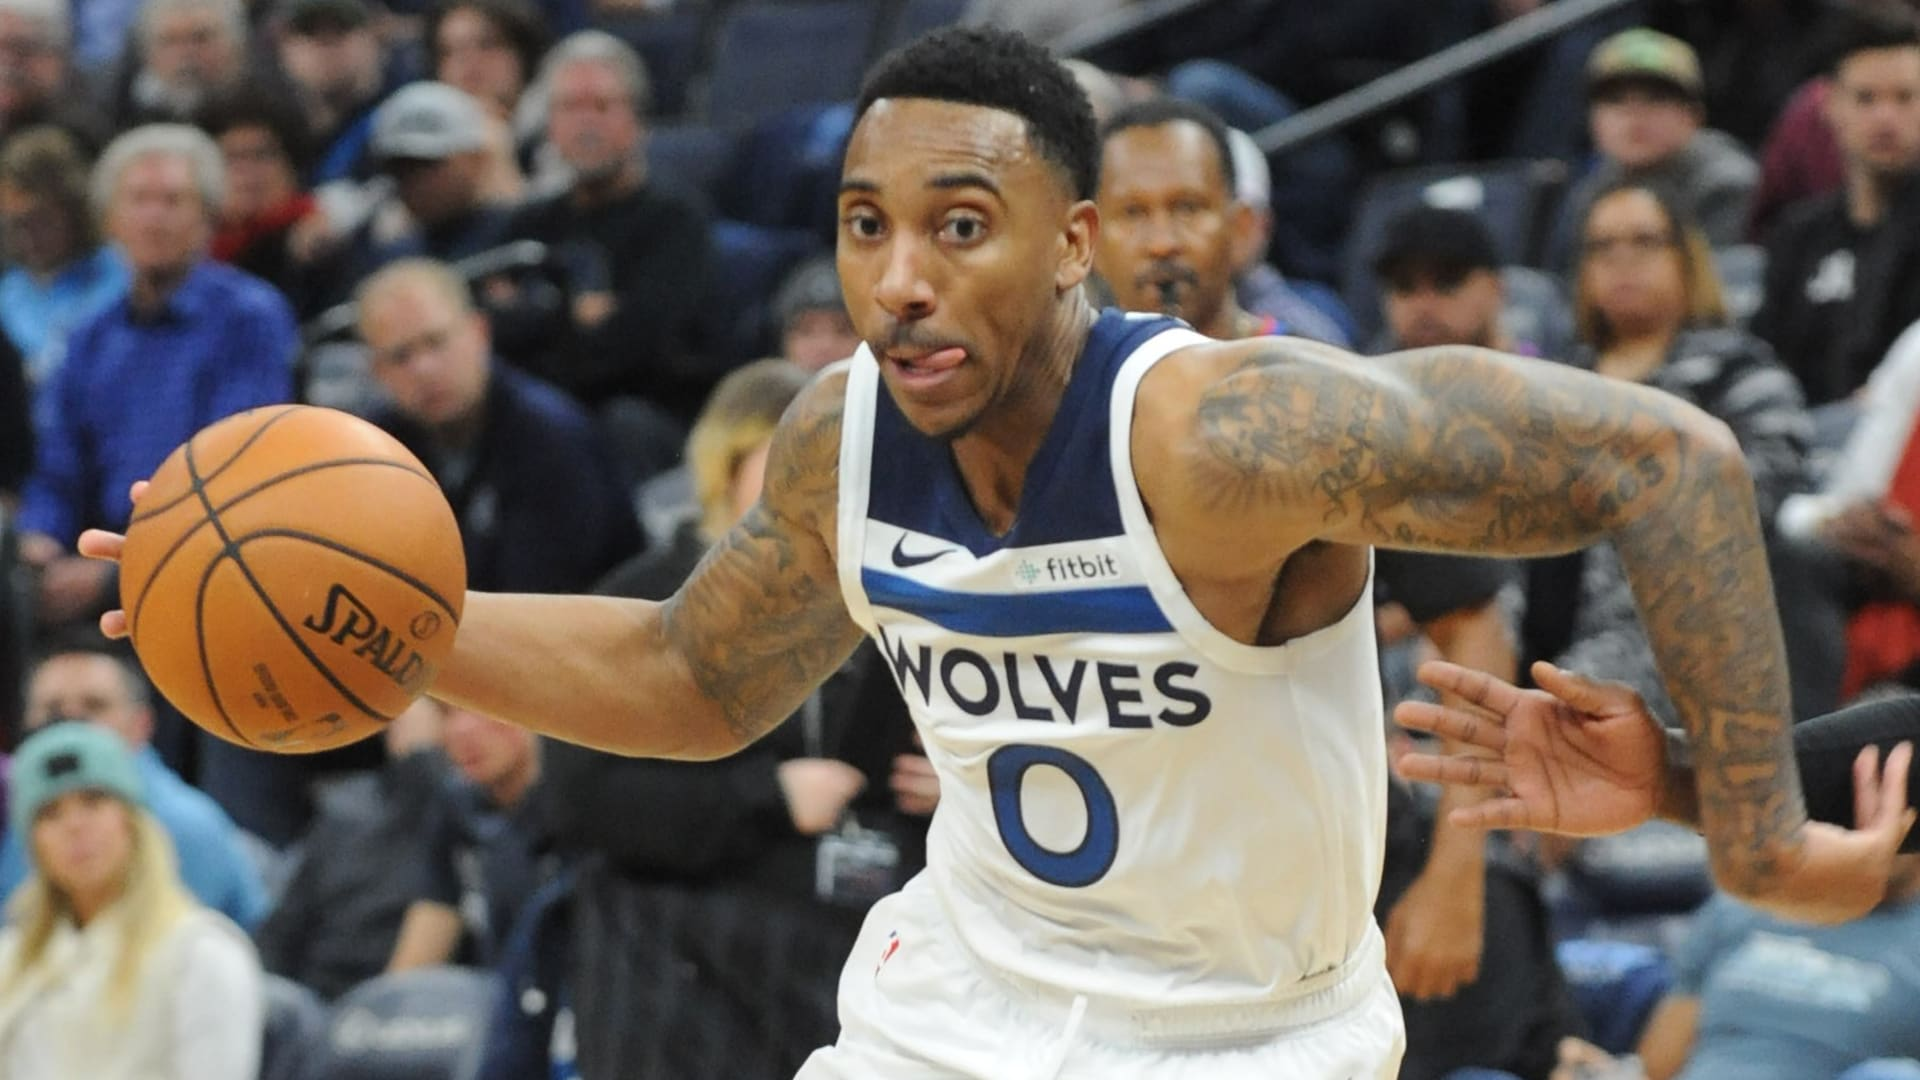 Wolves trade Jeff Teague to Hawks